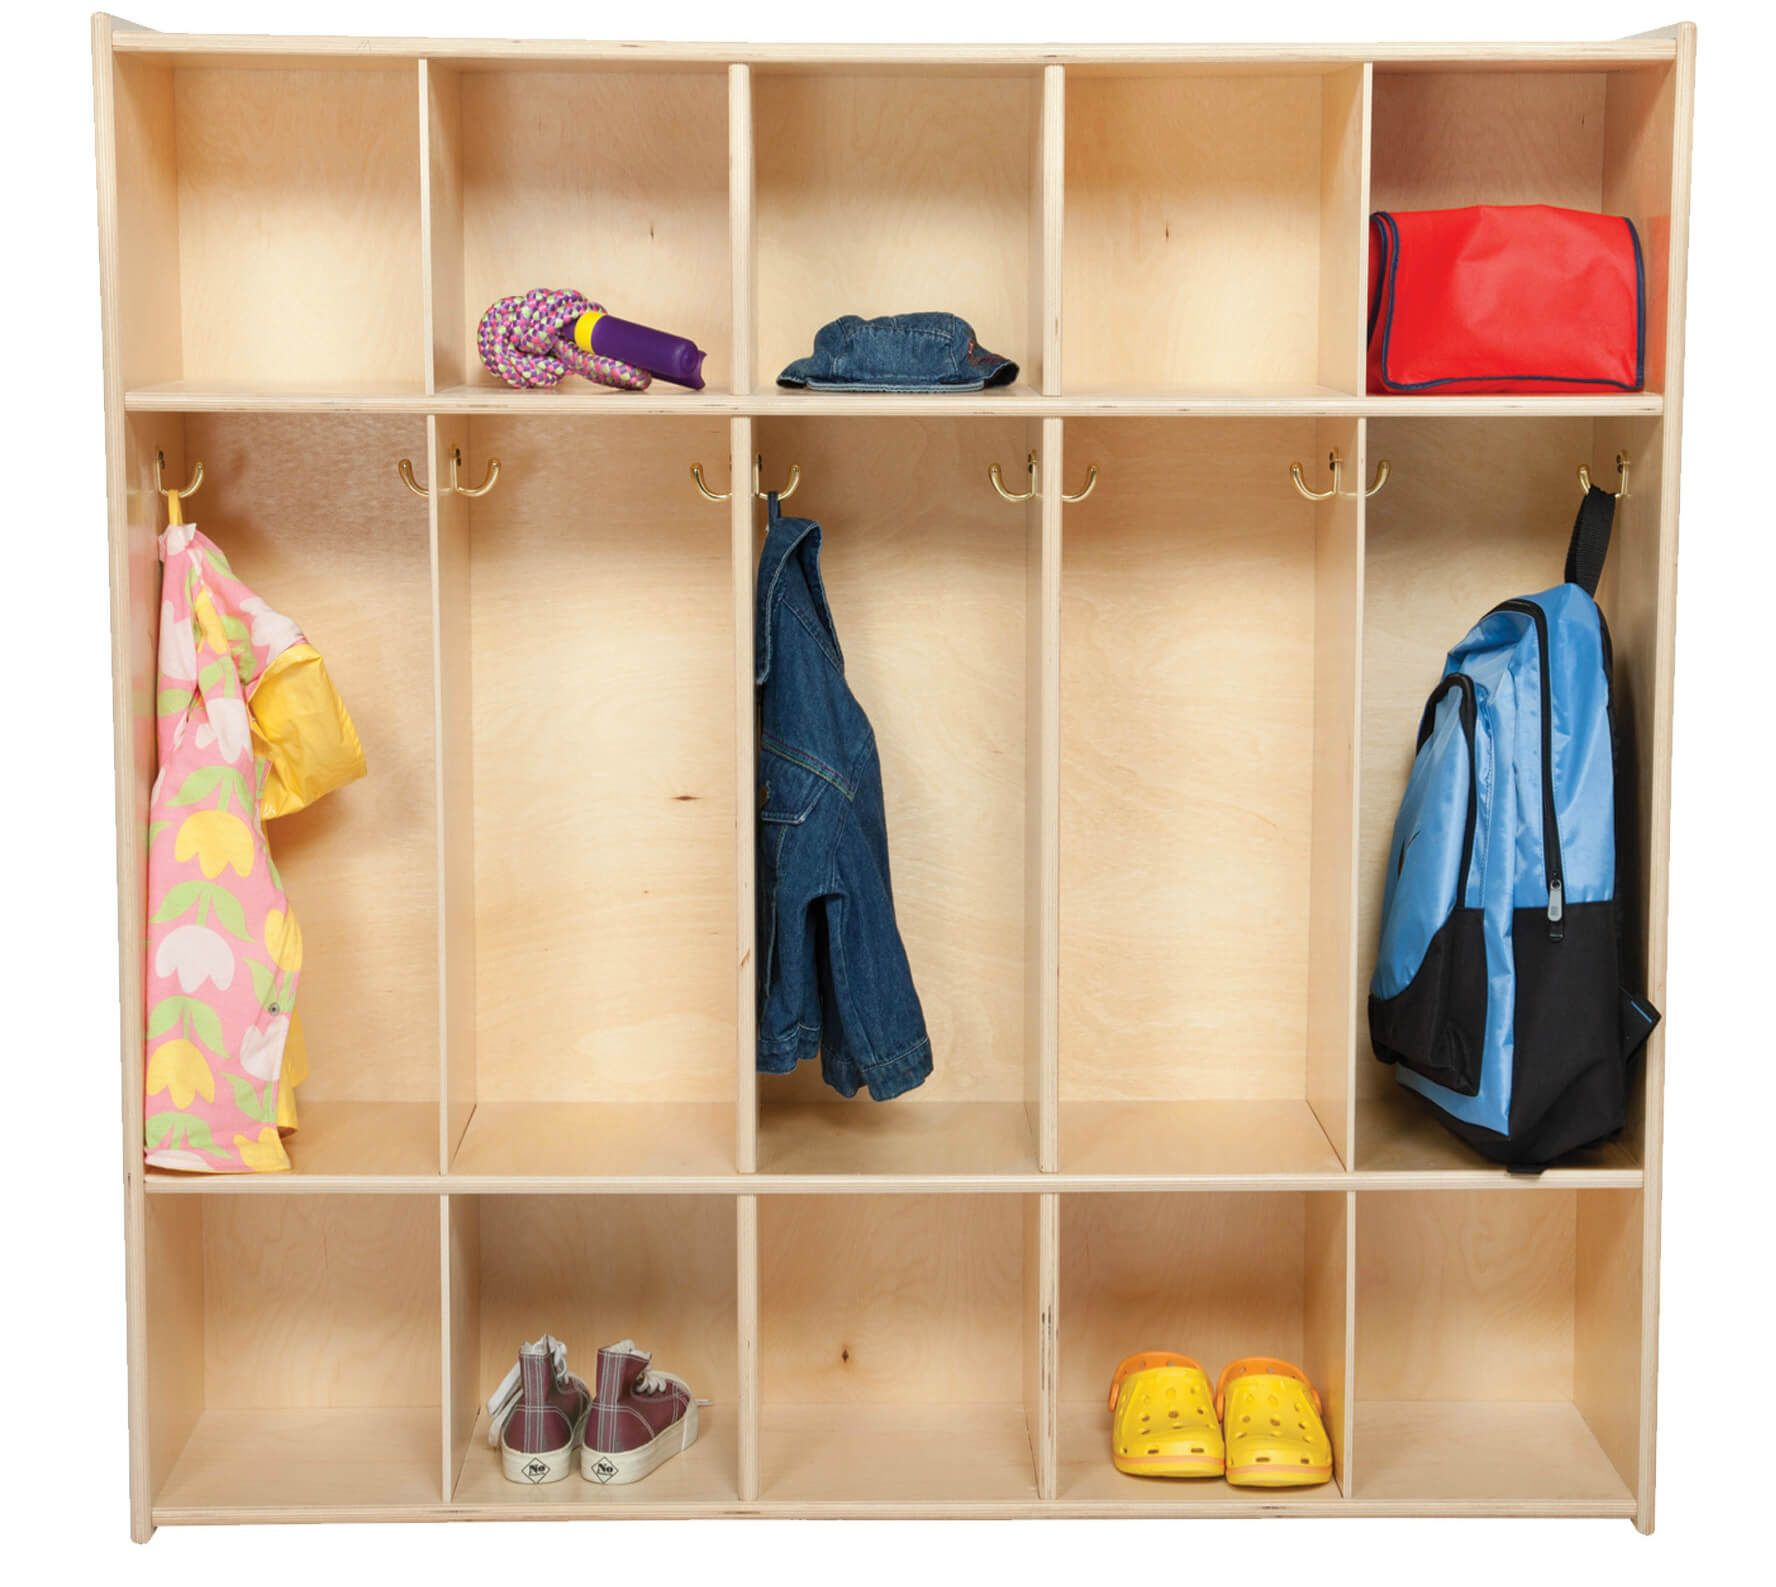 29 Best Mudroom Locker Options By Type For Kids In